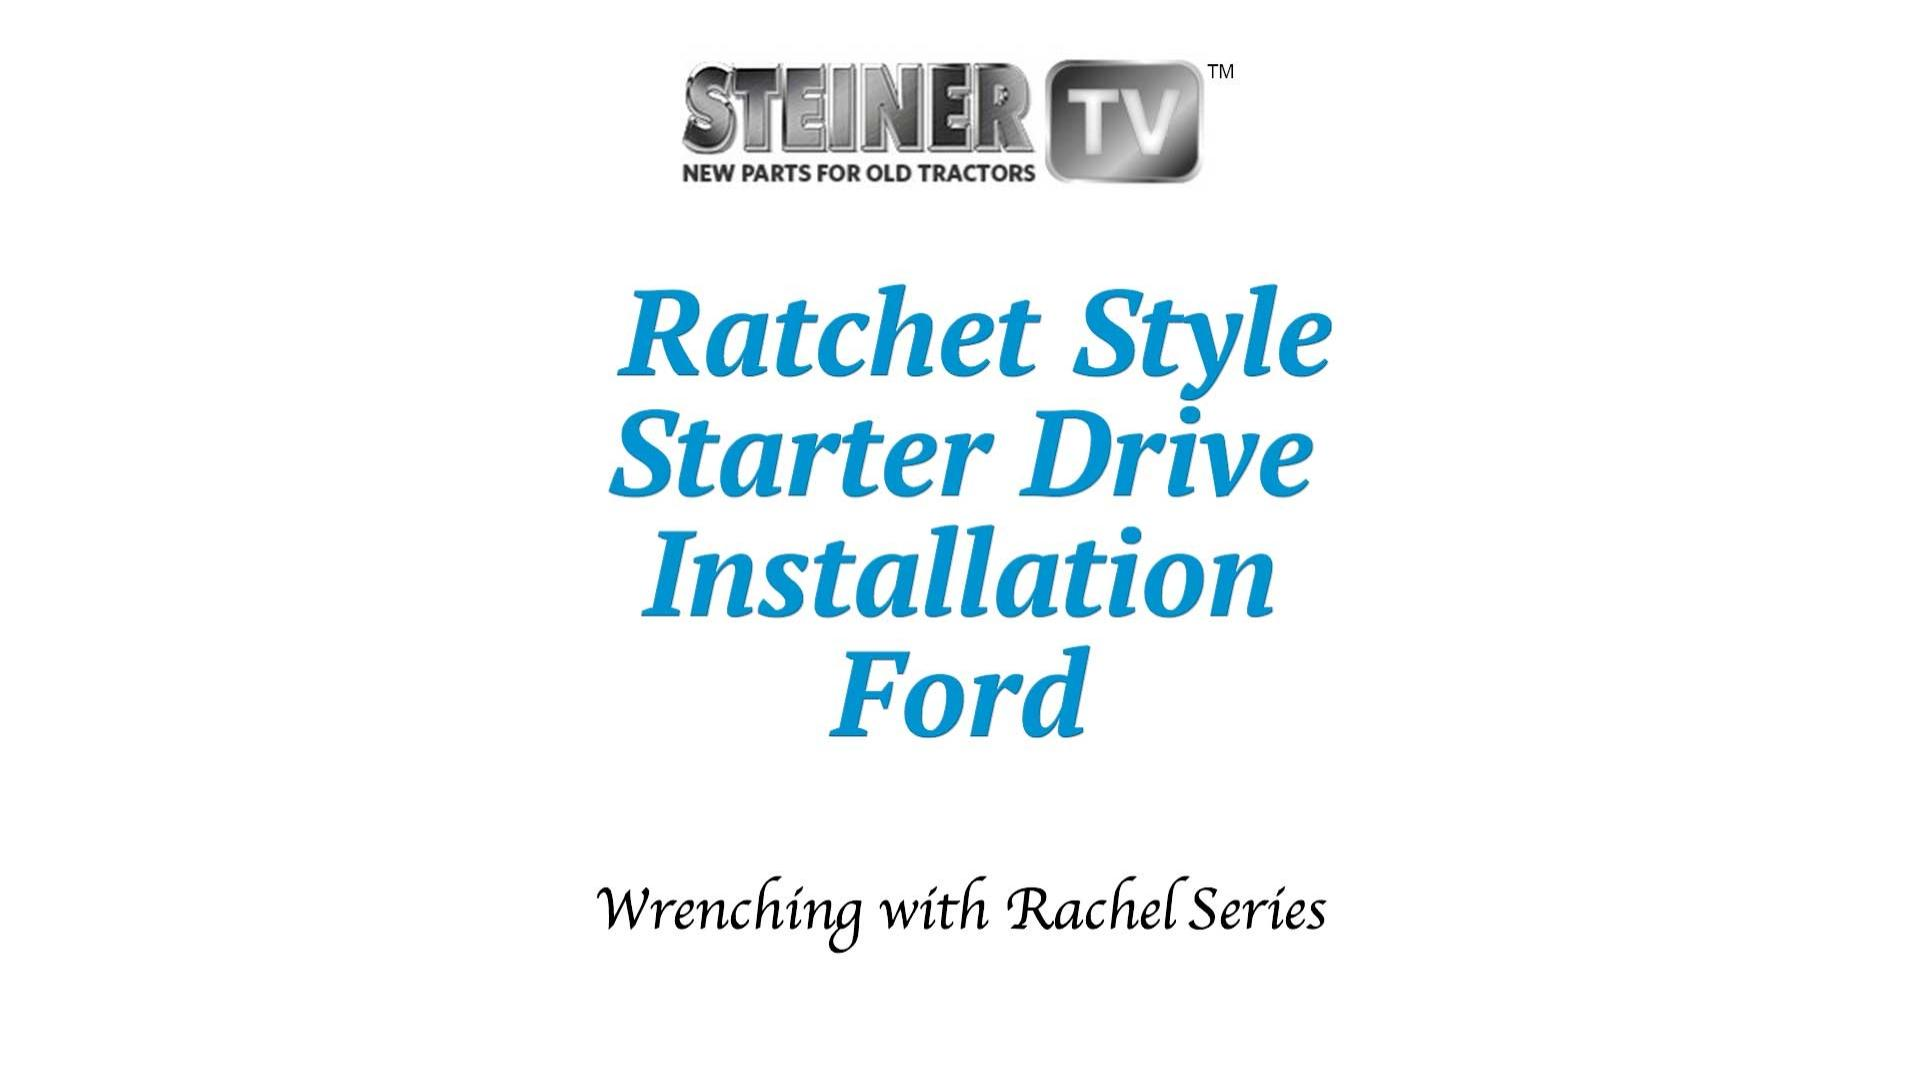 Ratchet Style Starter Drive Installation On A Ford Golden Jubilee 12v Wiring Diagram